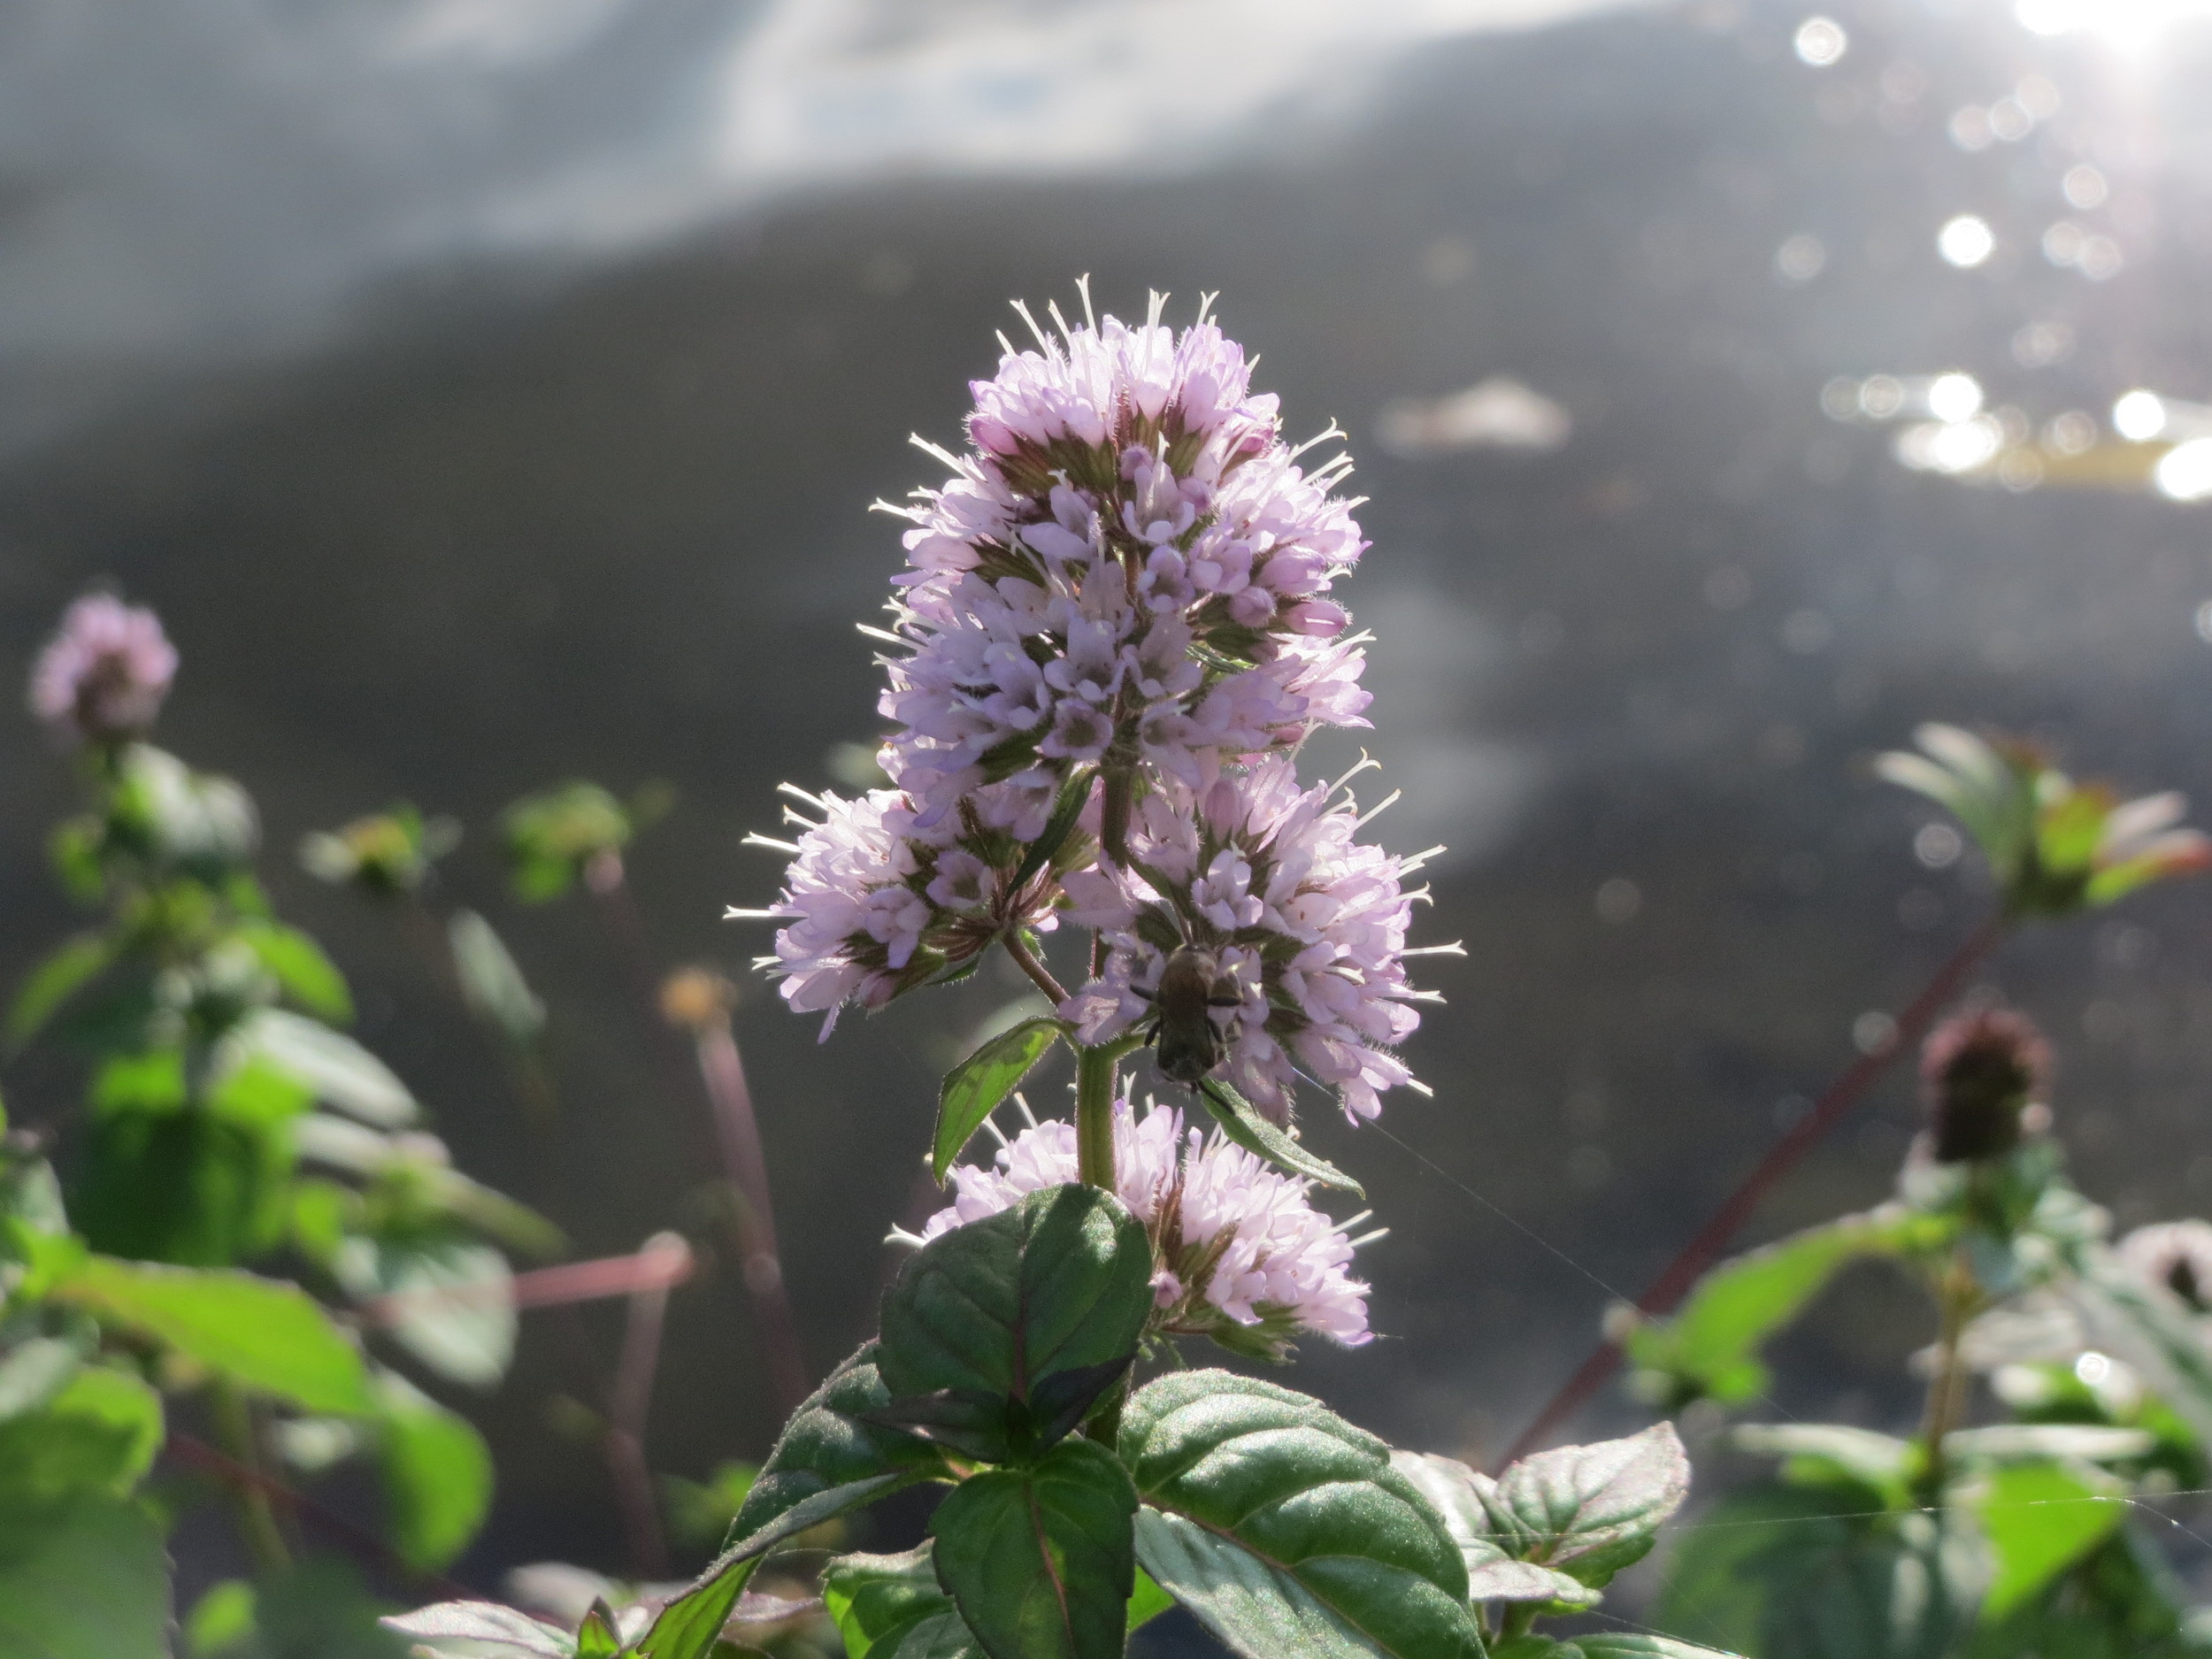 https://upload.wikimedia.org/wikipedia/commons/e/e7/20150908Mentha_aquatica5.jpg